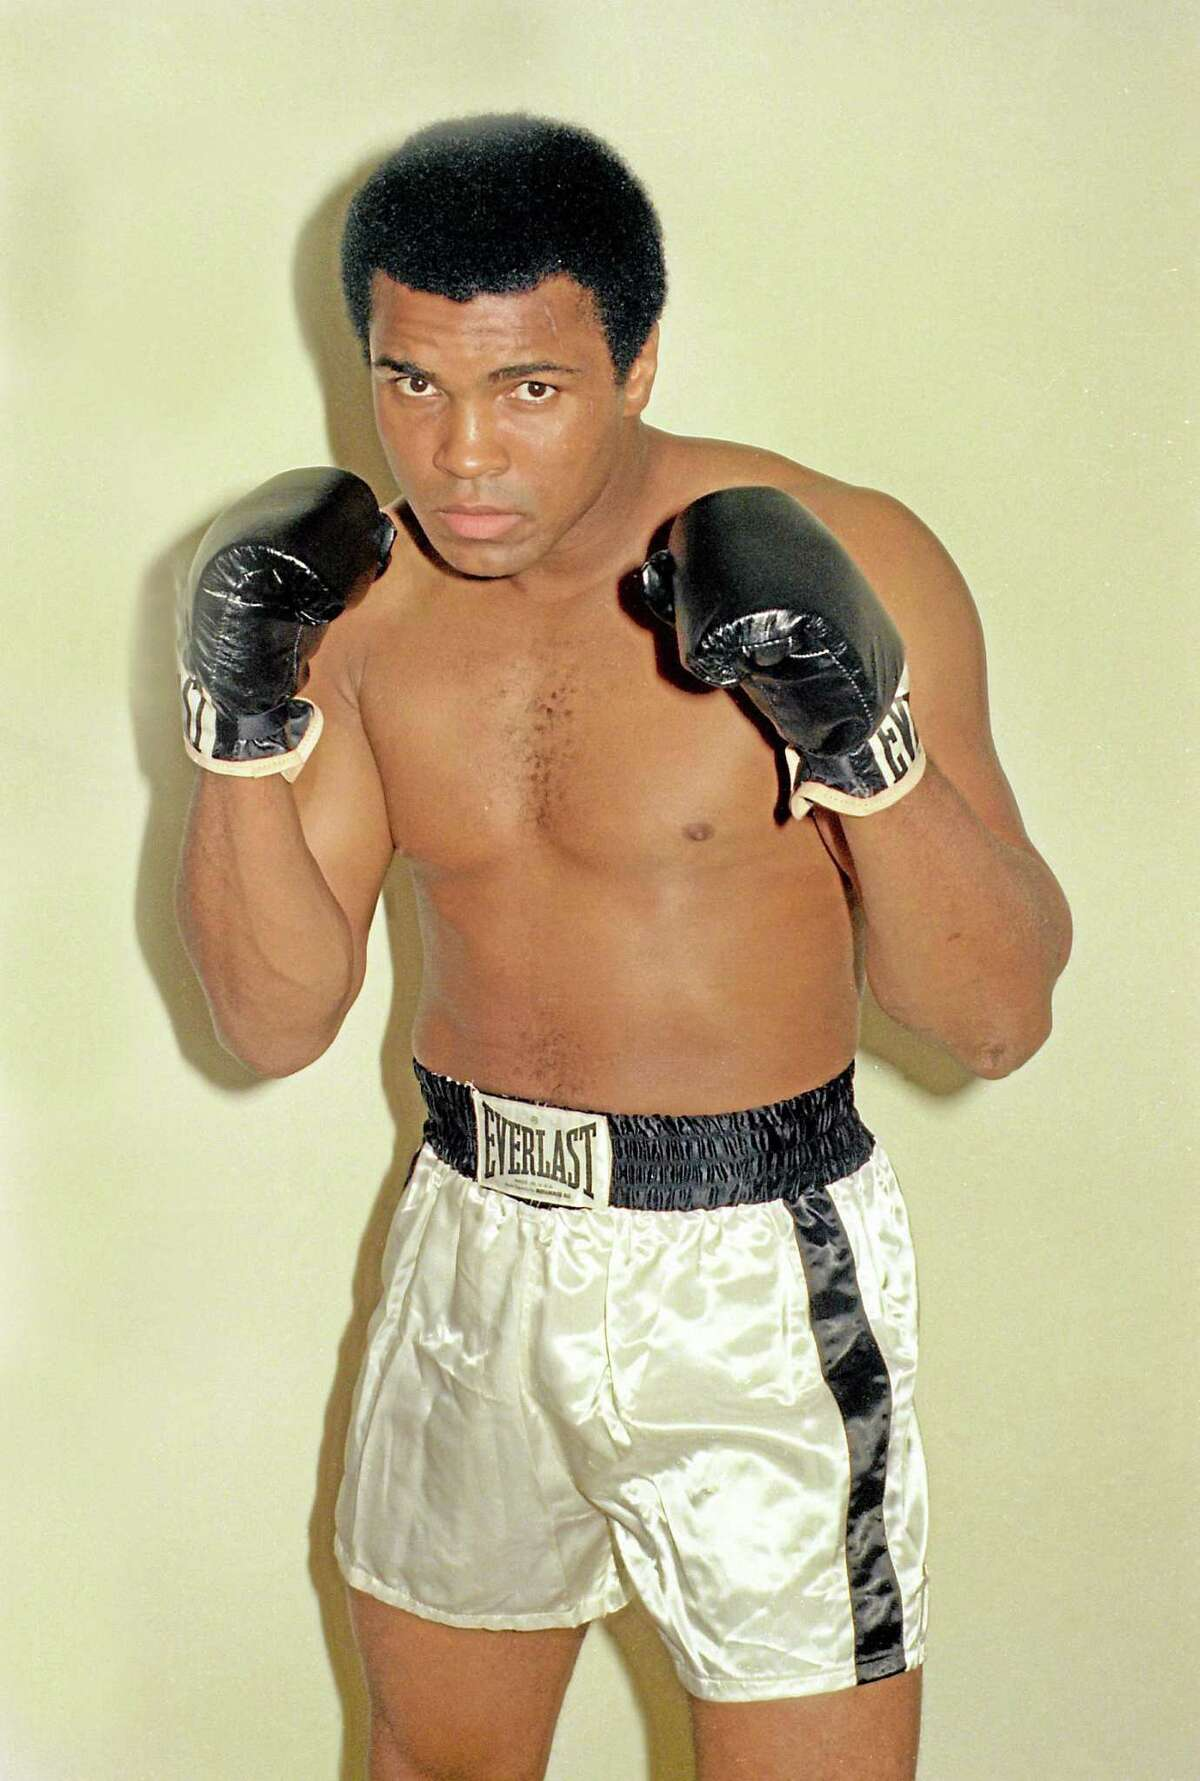 Muhammad Ali is seen training Oct. 9, 1974 for his world championship fight in Zaire.